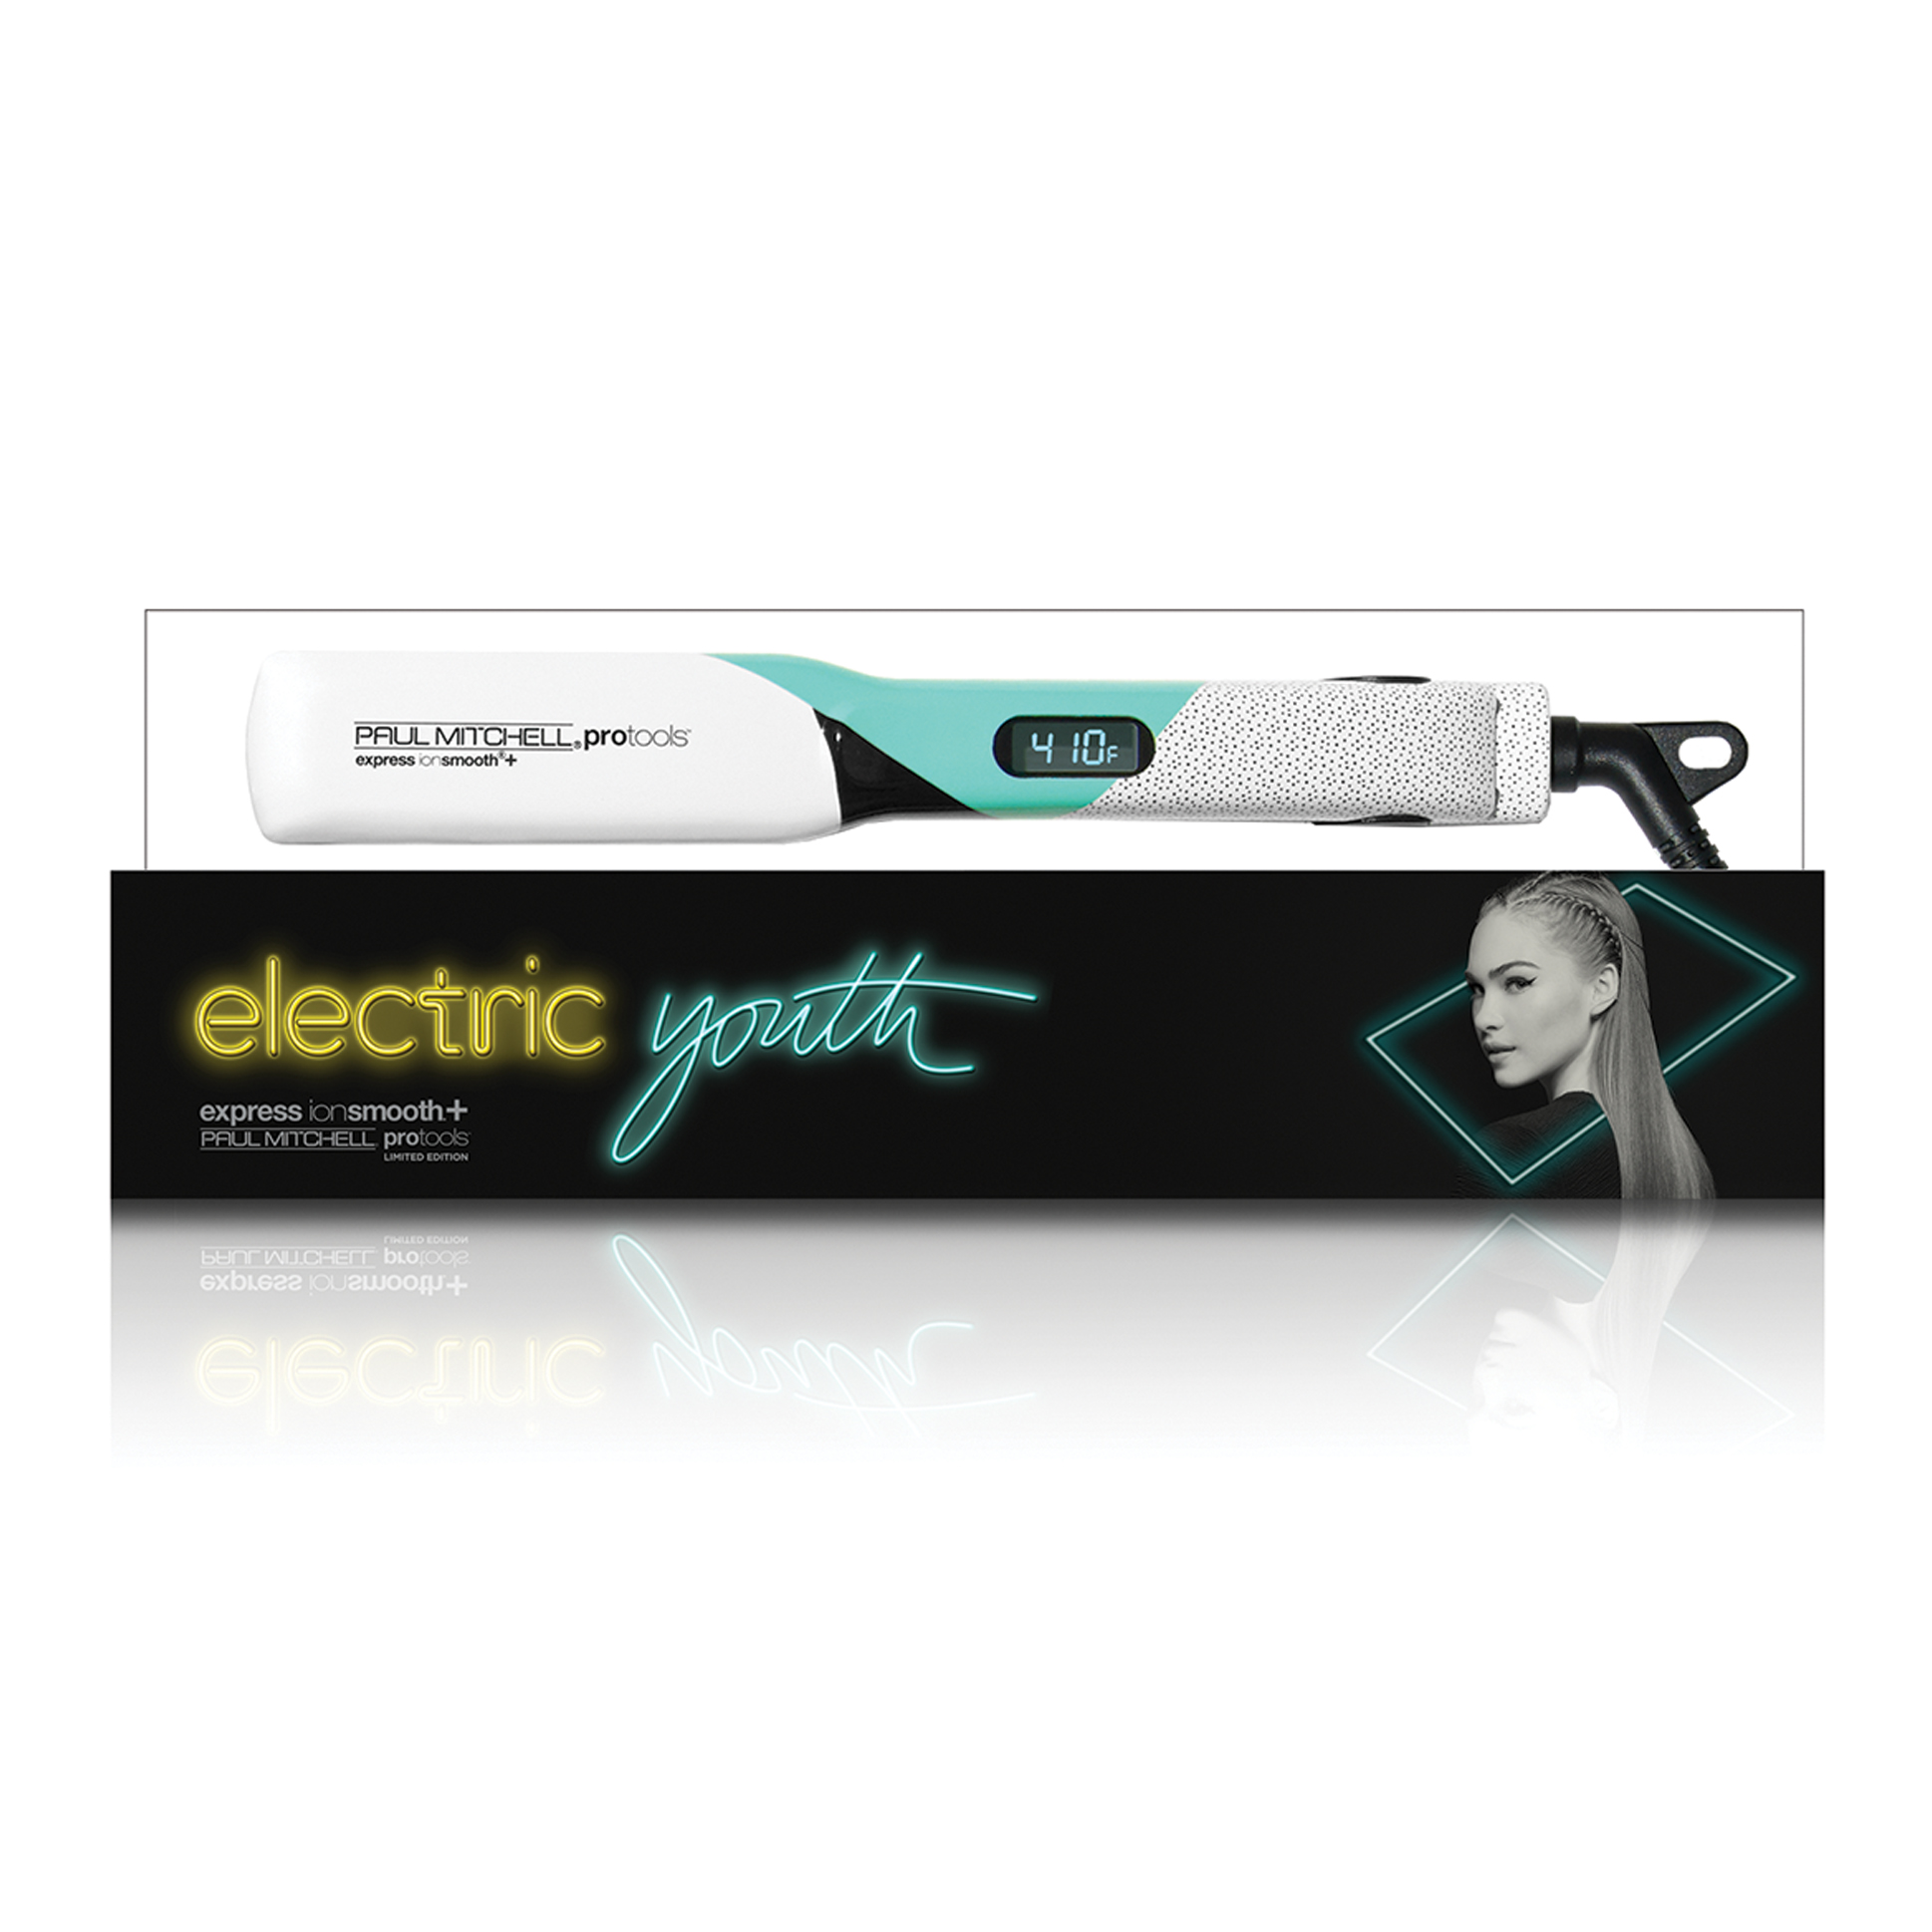 paul-mitchell-new-now-Electric Youth Express Ion Tools-IG-mar-april-2016